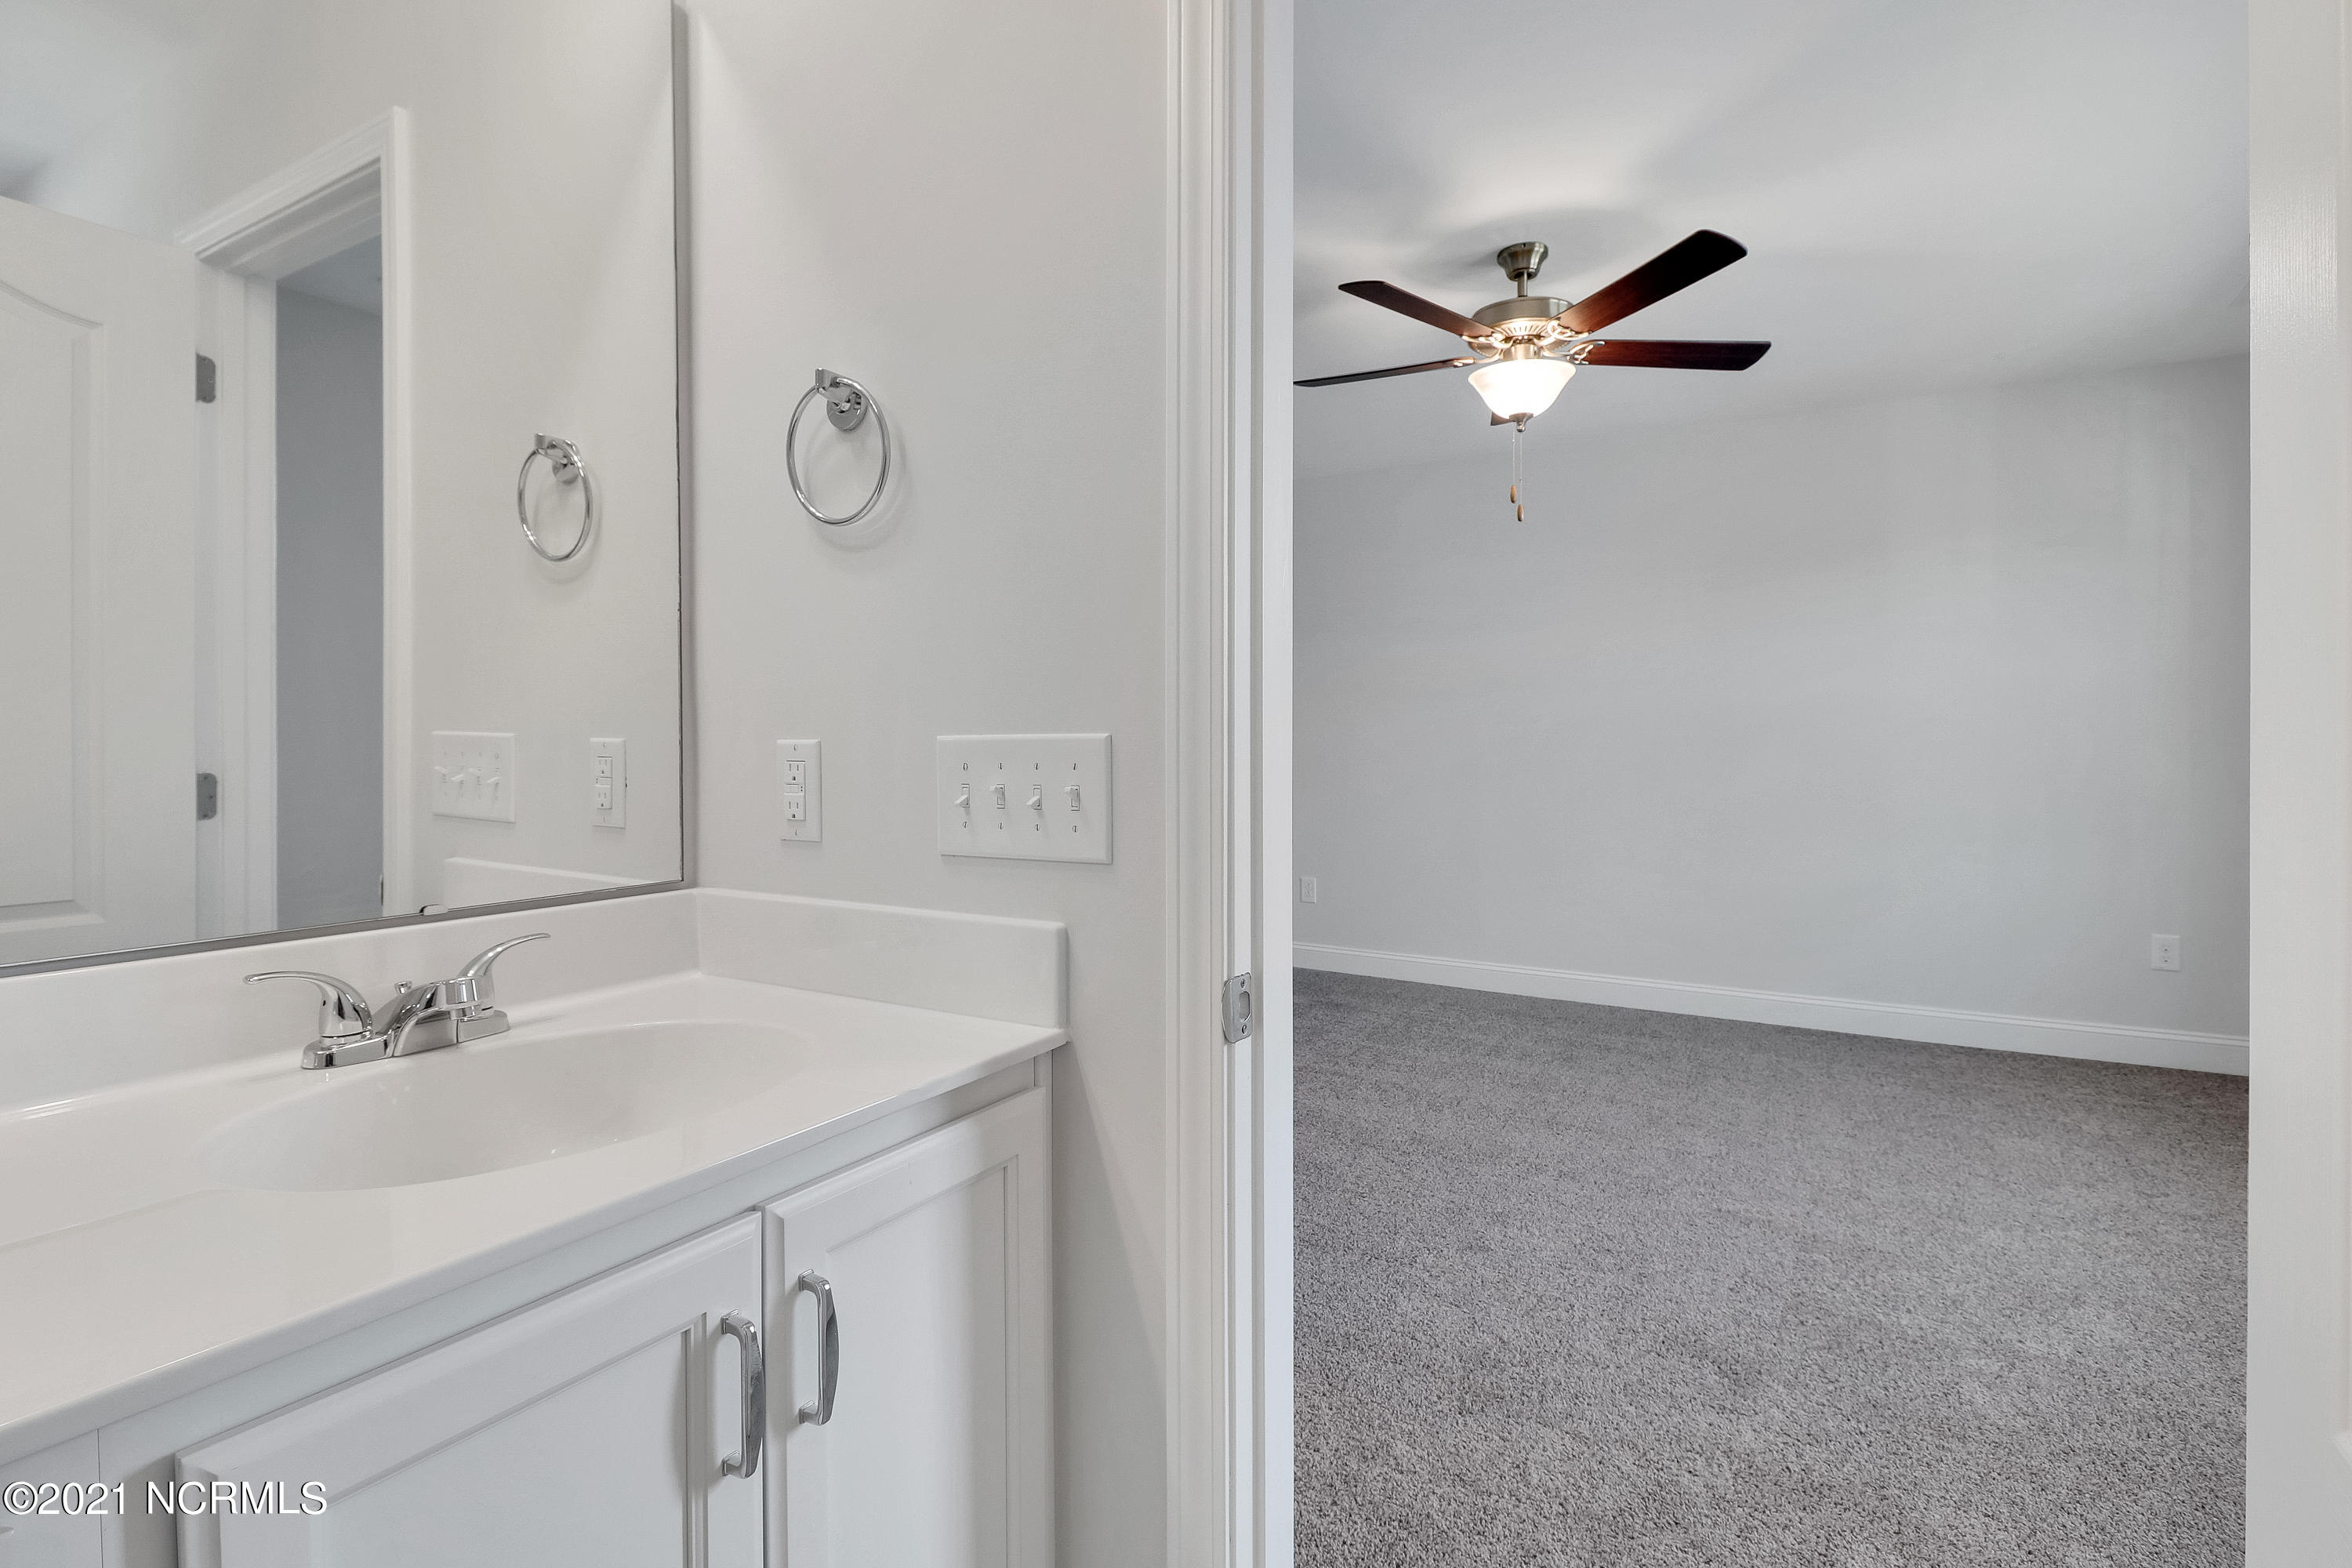 393 Trevally Court, Southport, North Carolina 28461, 3 Bedrooms Bedrooms, 6 Rooms Rooms,2 BathroomsBathrooms,Townhouse,For sale,Trevally,100260191